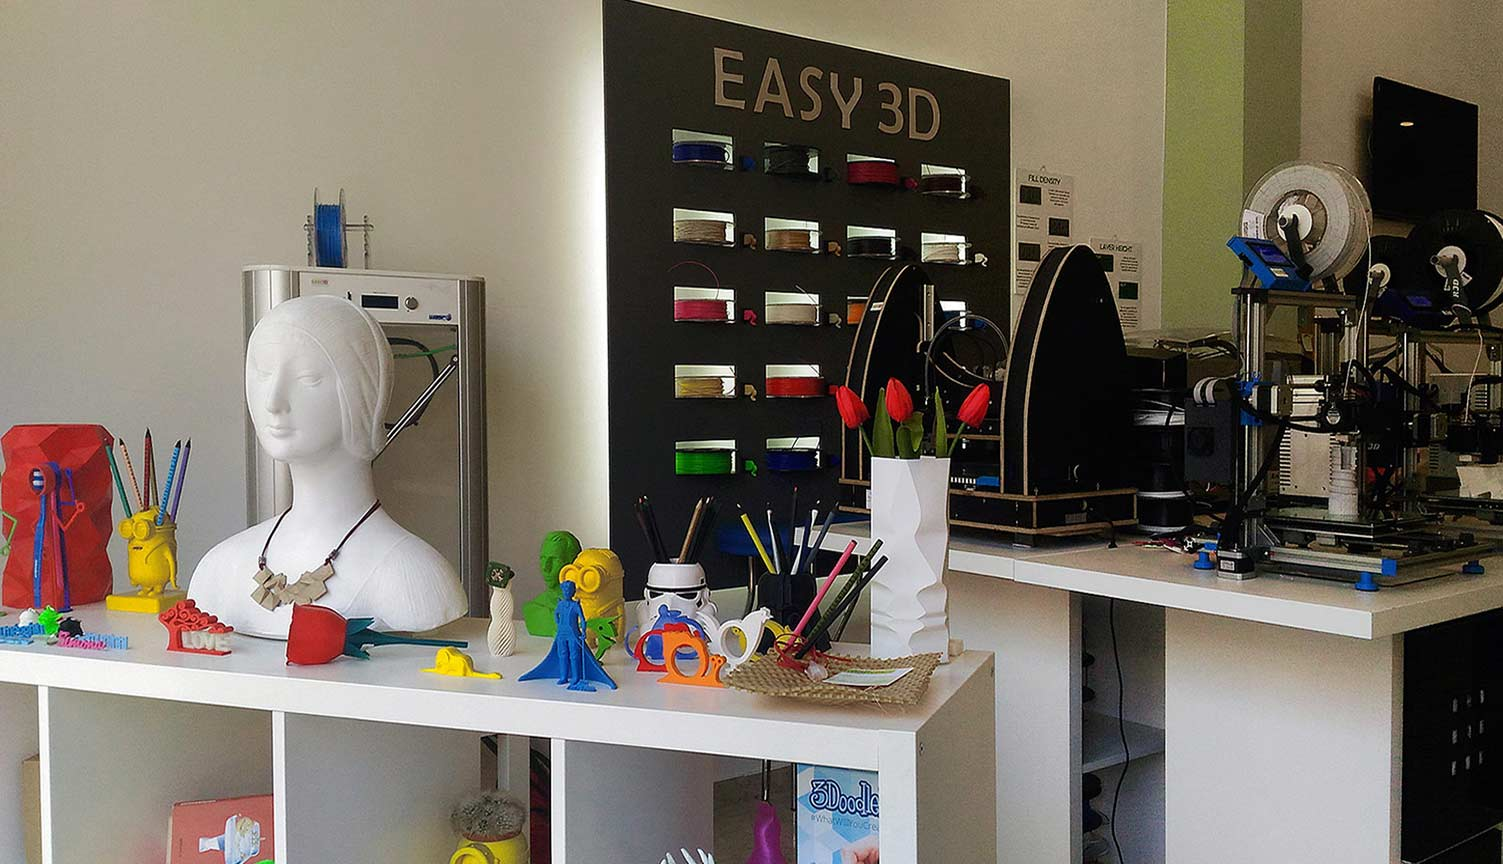 EASY3D SHOP LAB PALERMO